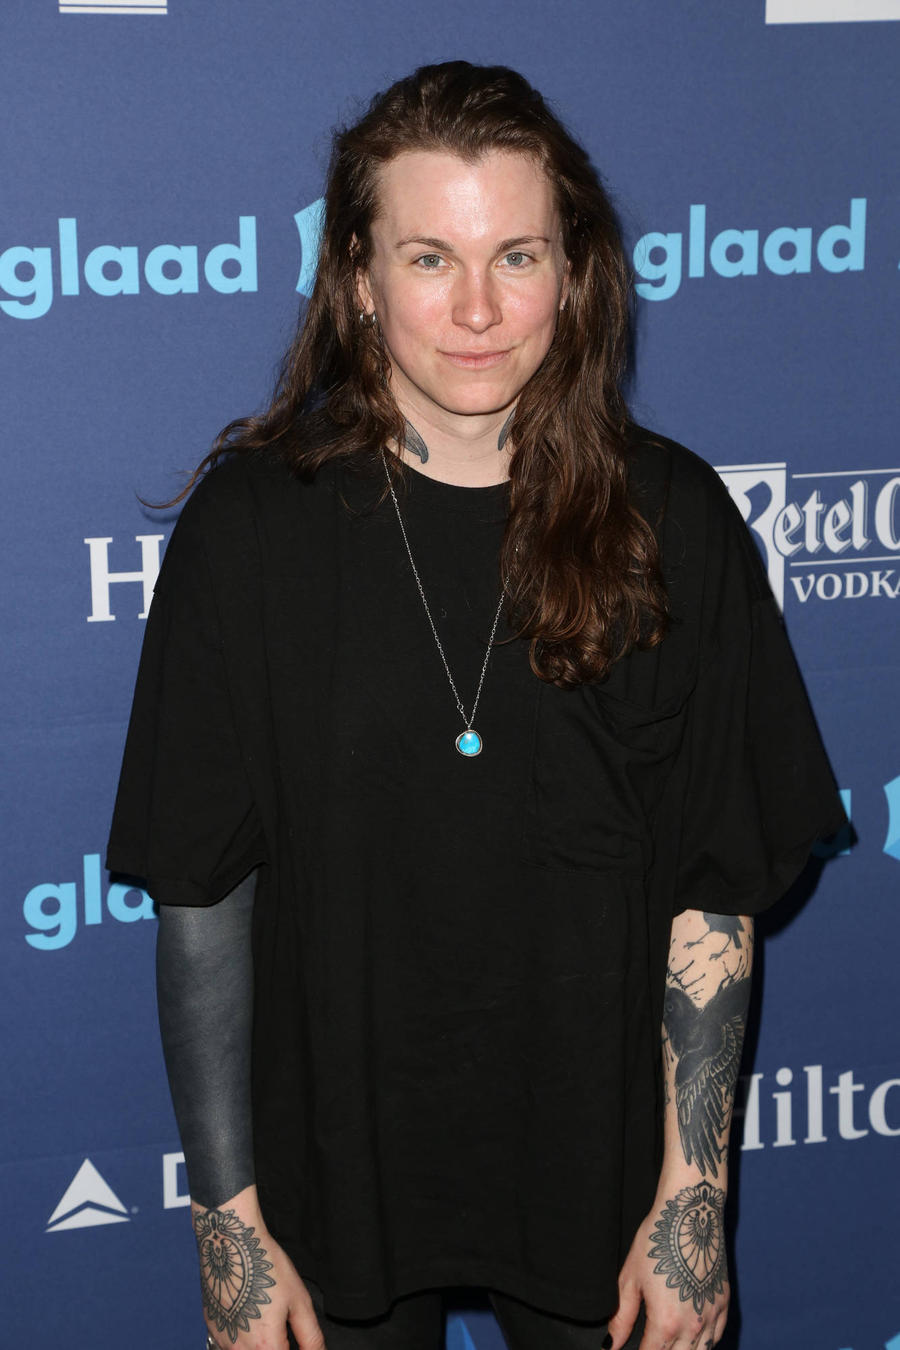 Laura Jane Grace's North Carolina Show Will Be A Protest